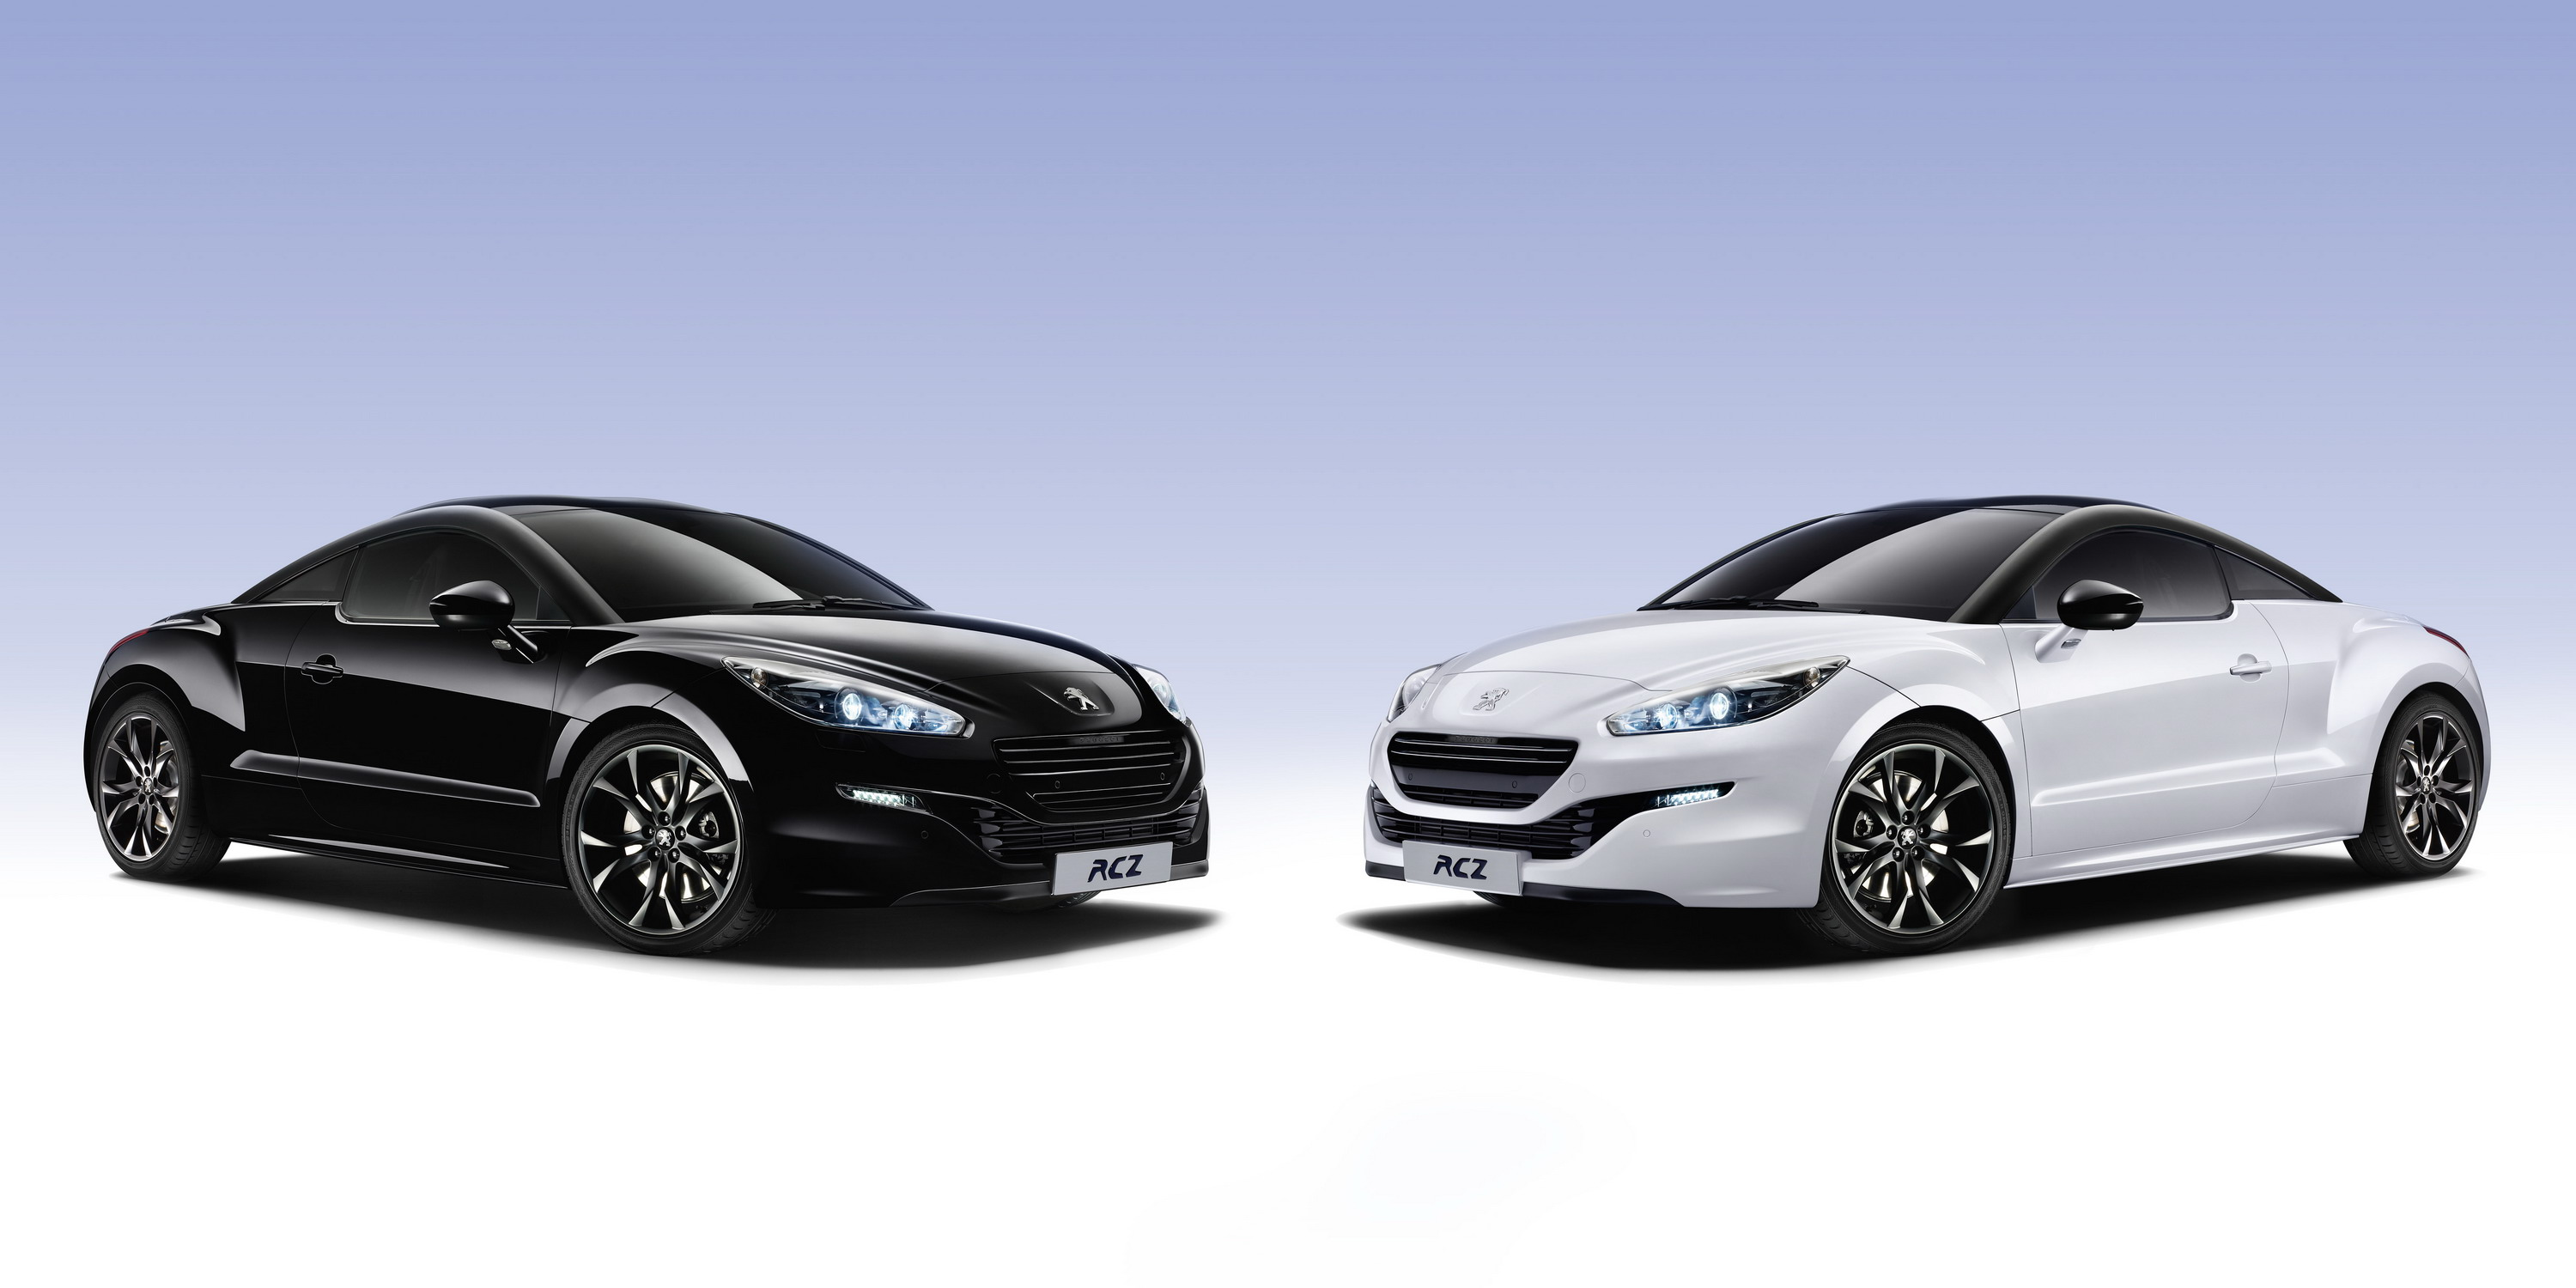 2013 Peugeot Rcz Magnetic Limited Edition Top Speed